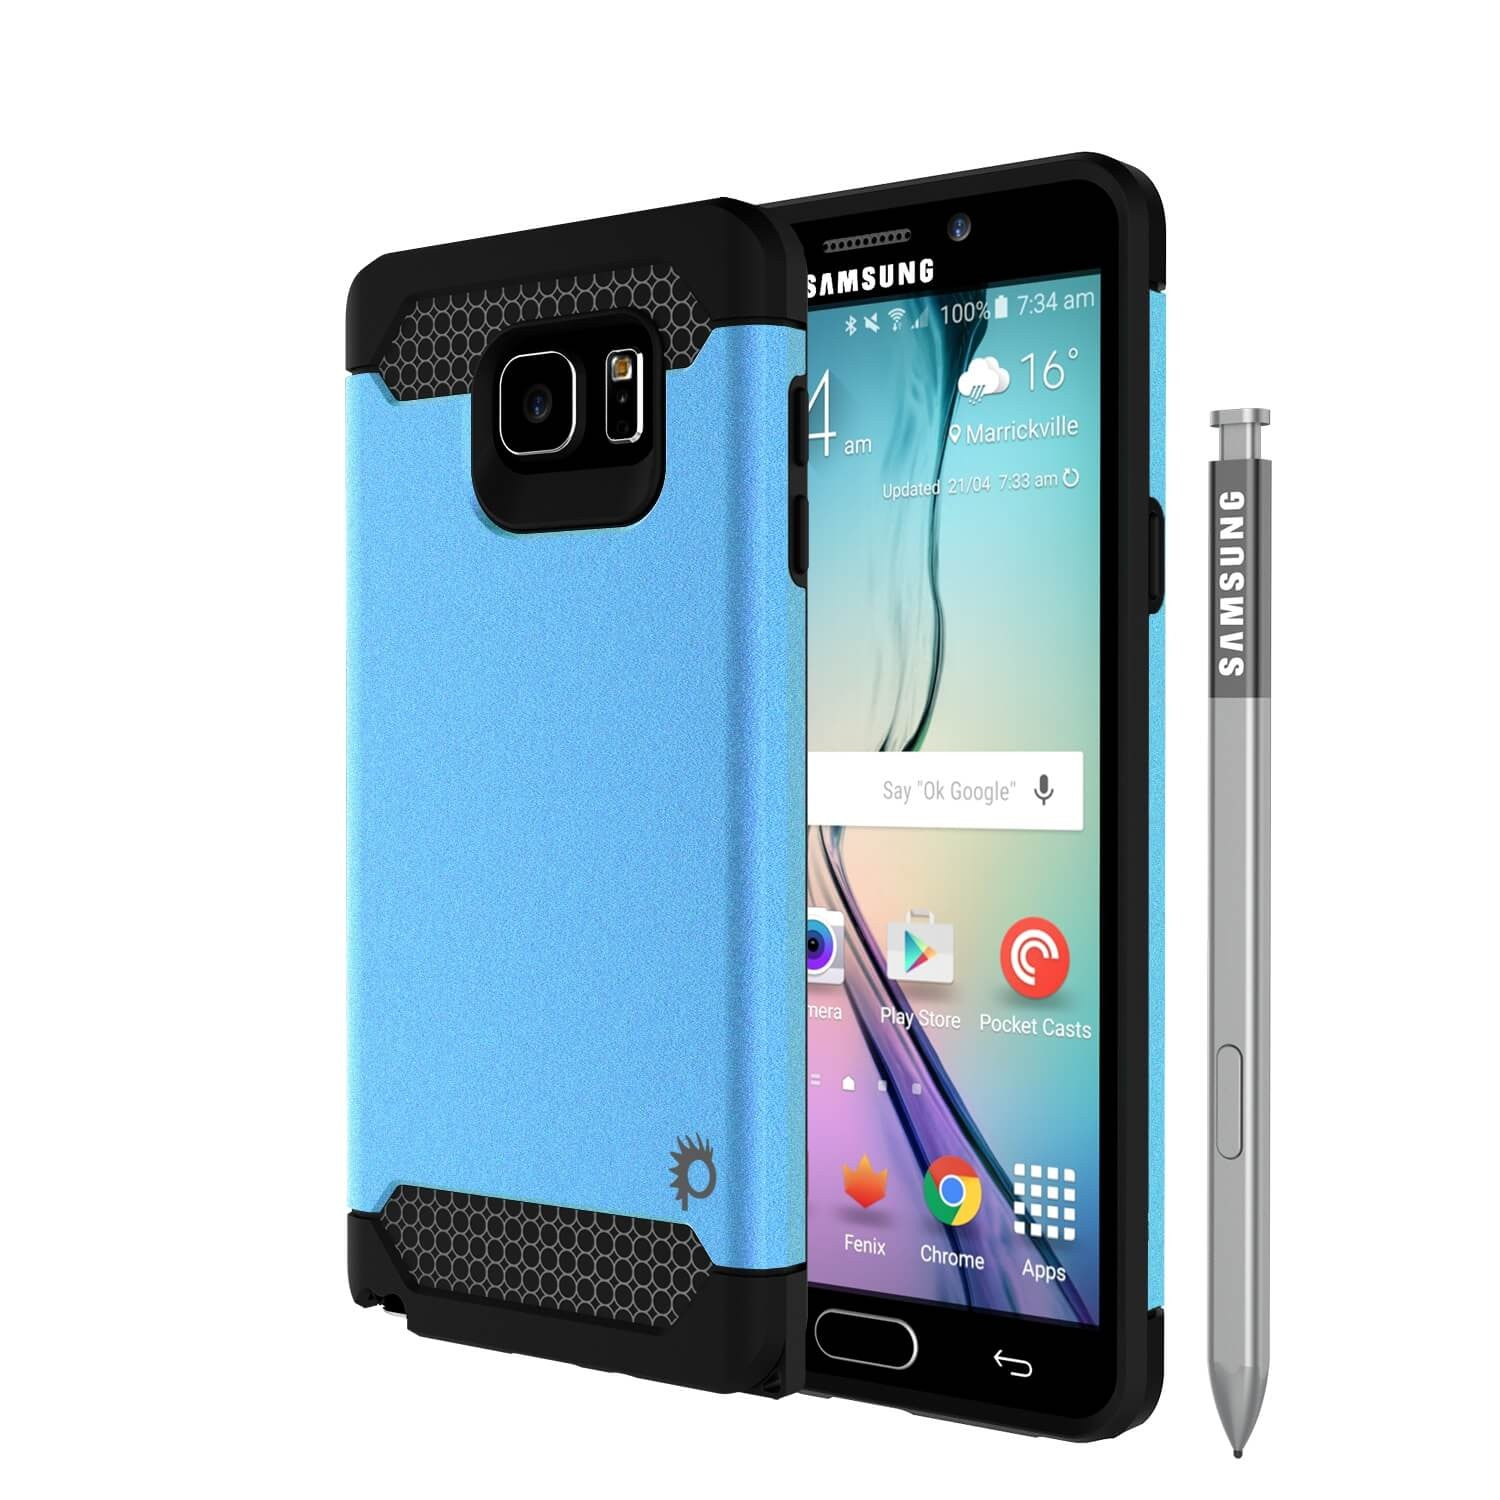 Galaxy Note 5 Case PunkCase Galactic Teal Series Slim Armor Soft Cover Case w/ Tempered Glass